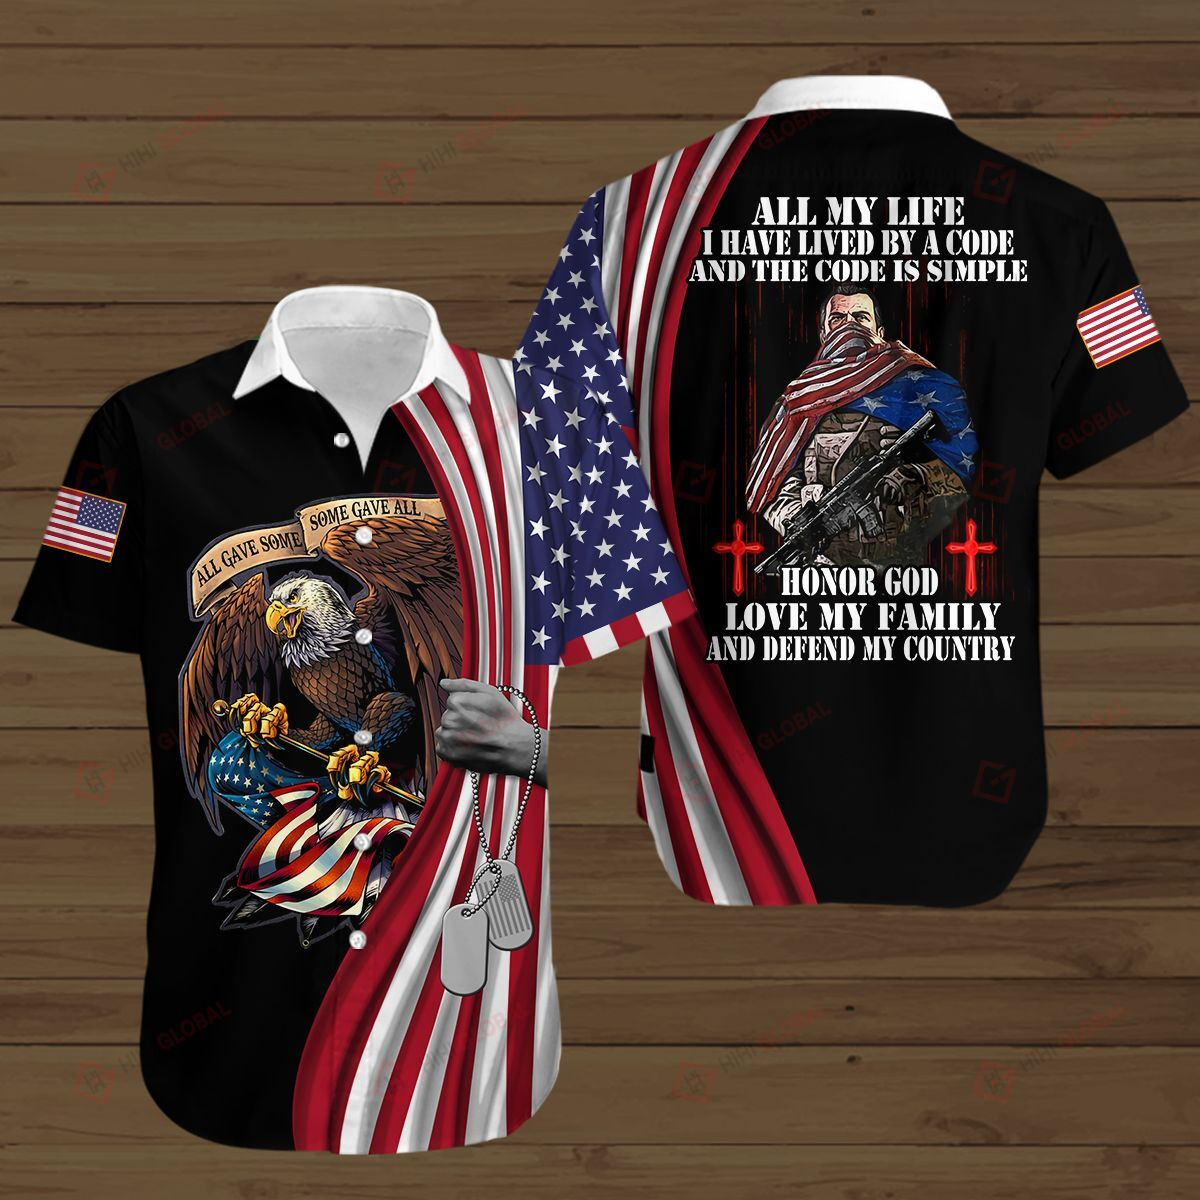 American Soldier Lived By A Code Honor God Love My Family and Defend My Country Black 3D Shirt